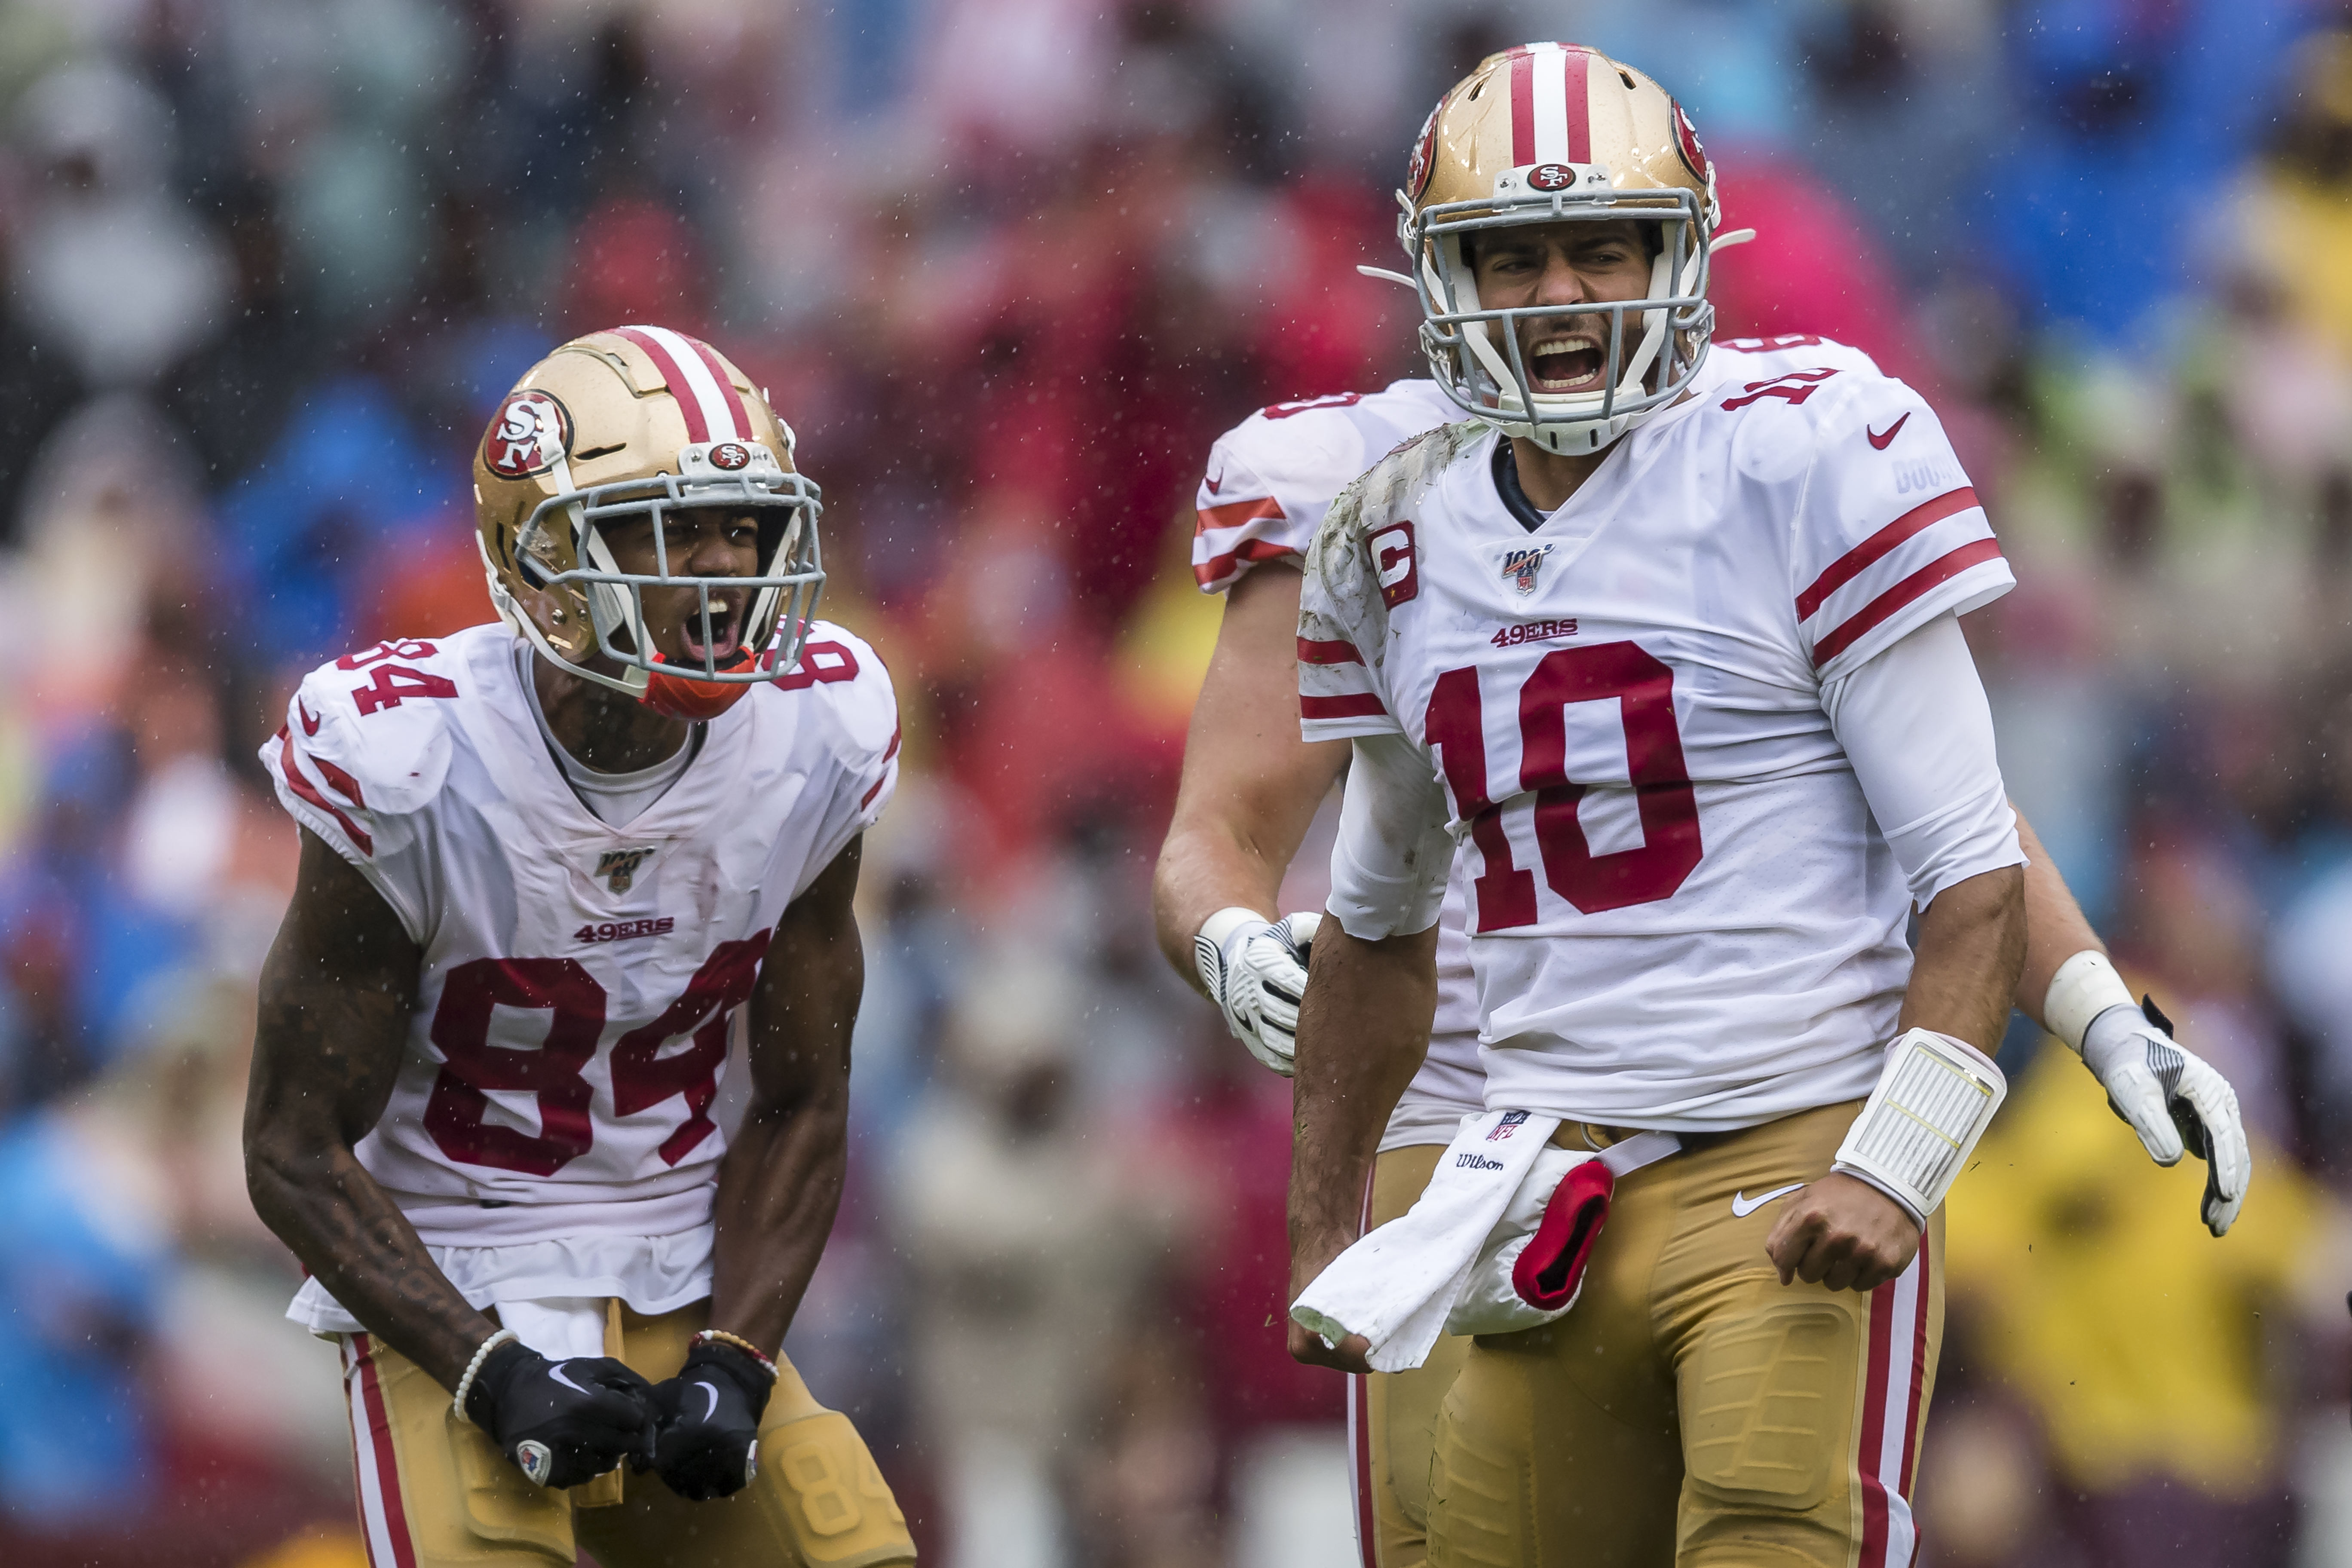 Jimmy Garoppolo and Kendrick Bourne of the San Francisco 49ers reacts after gaining a first down against Washington during the first half at FedExField on October 20, 2019 in Landover, Maryland.